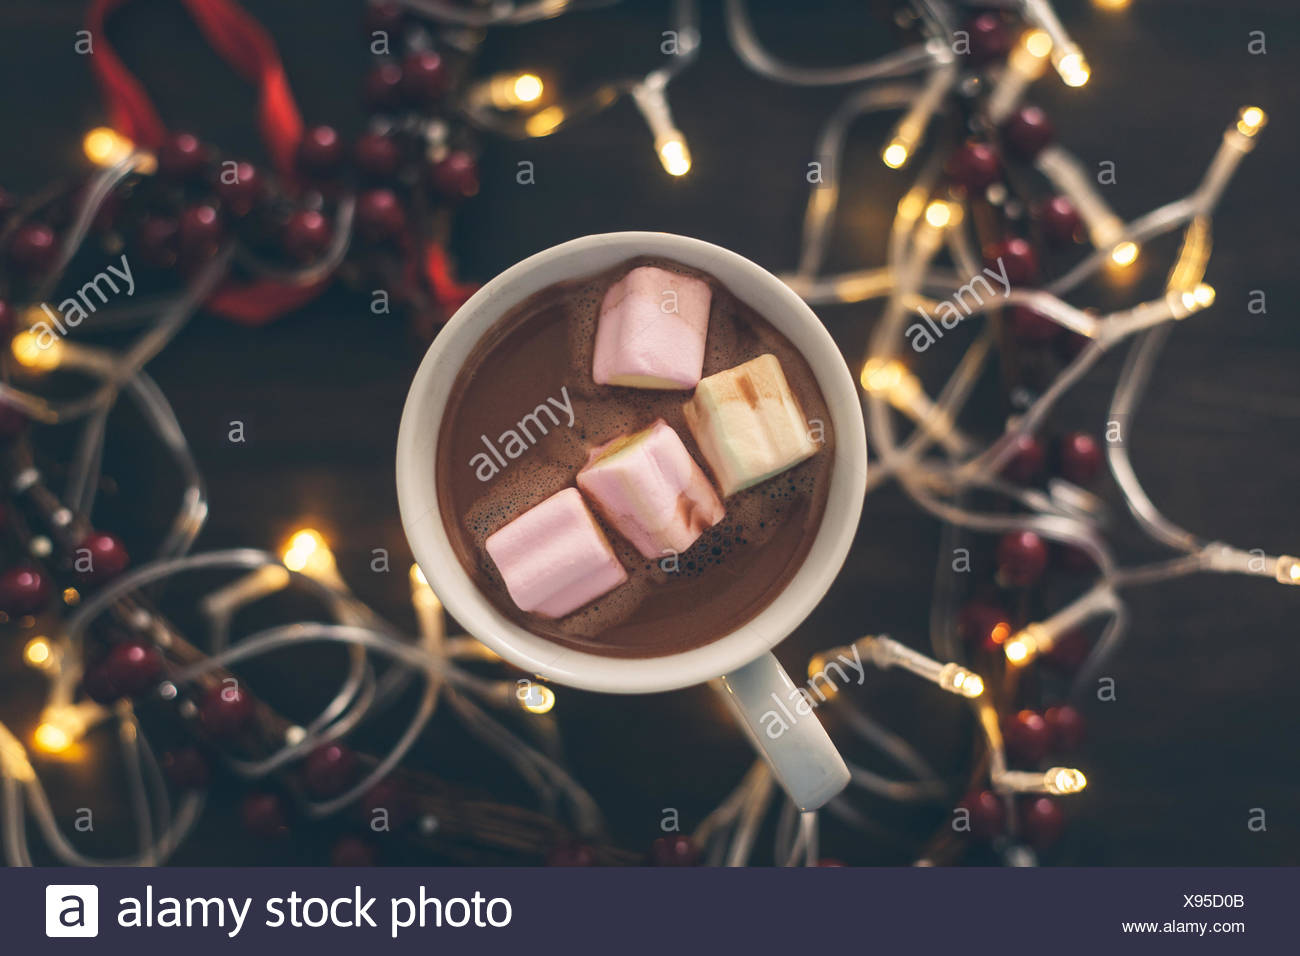 Close-Up Of Marshmallows In Coffees On Table Surrounded With Lighting - Stock Image